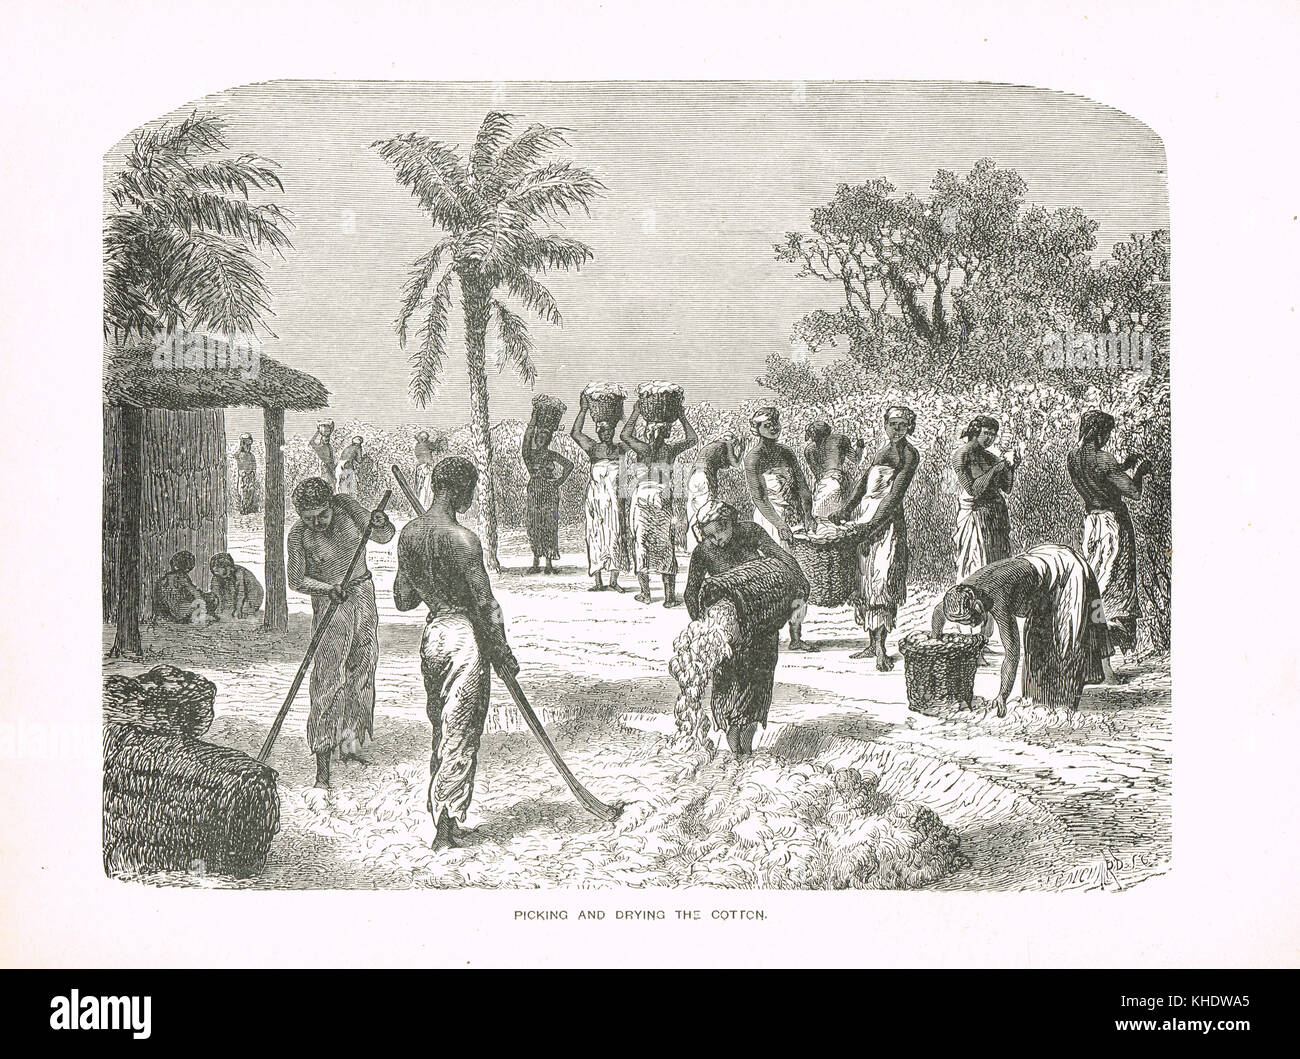 Slaves Picking and Drying cotton, 19th Century, United States - Stock Image